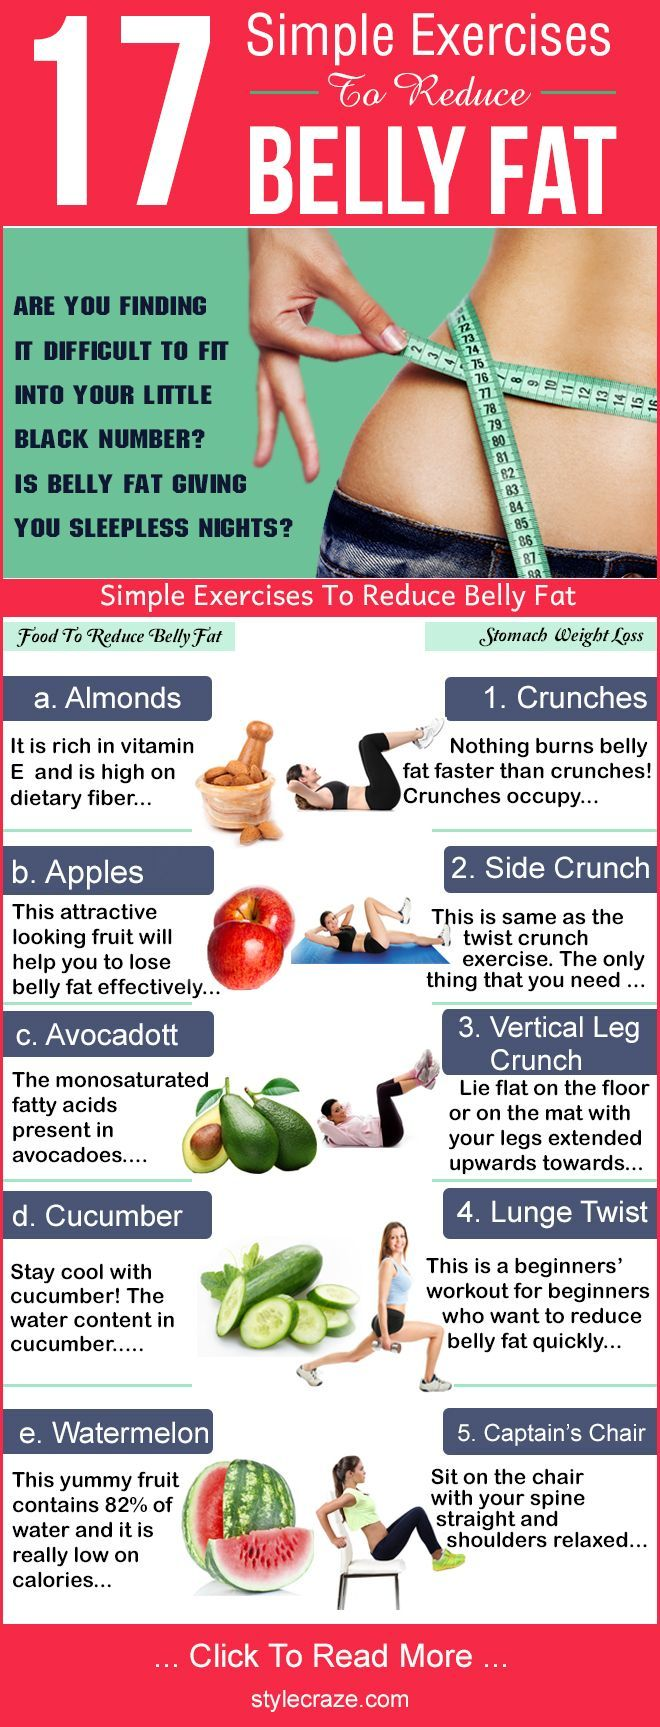 15 Best Exercises To Reduce Belly Fat + Expert Advice ...